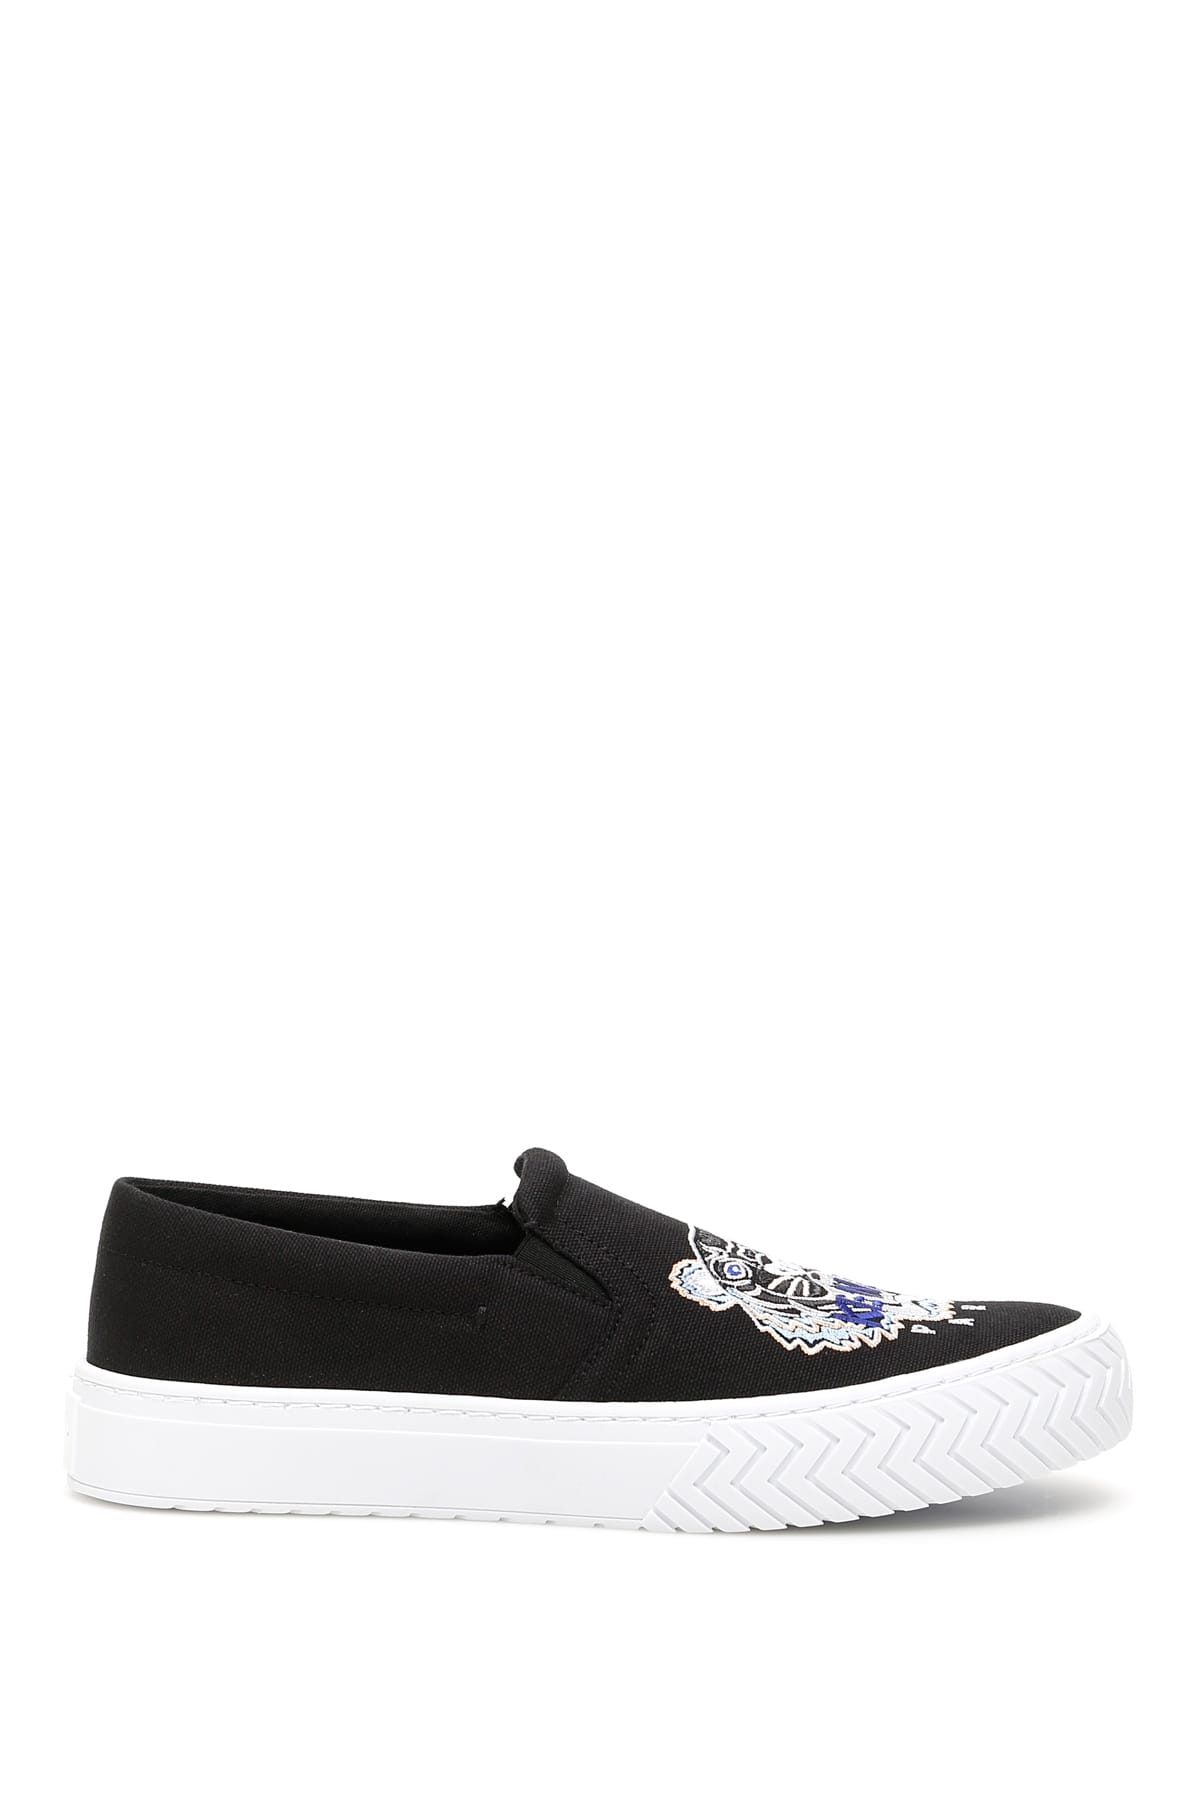 Kenzo Sneakers K-SKATE SLIP-ON SNEAKERS